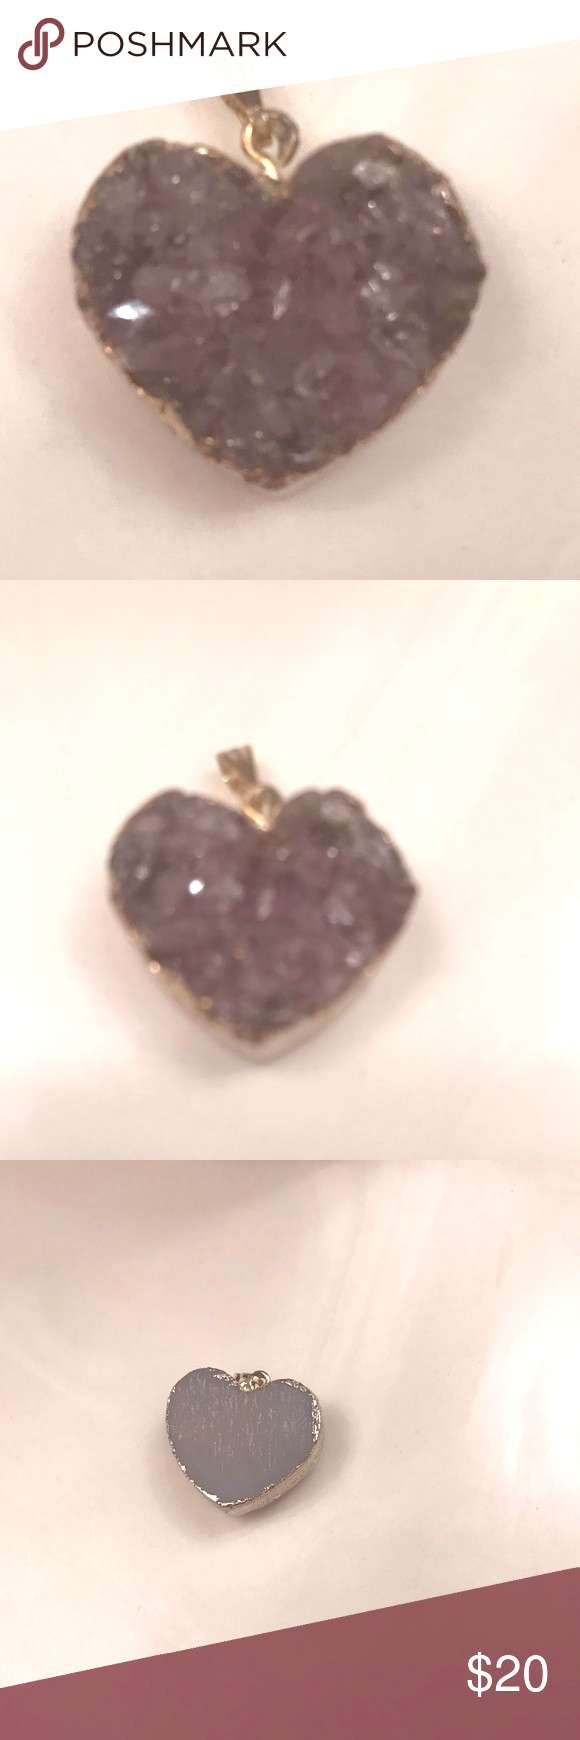 Amethyst heart charm for a necklace Gorgeous Amethyst heart one inch necklace charm slides on any c